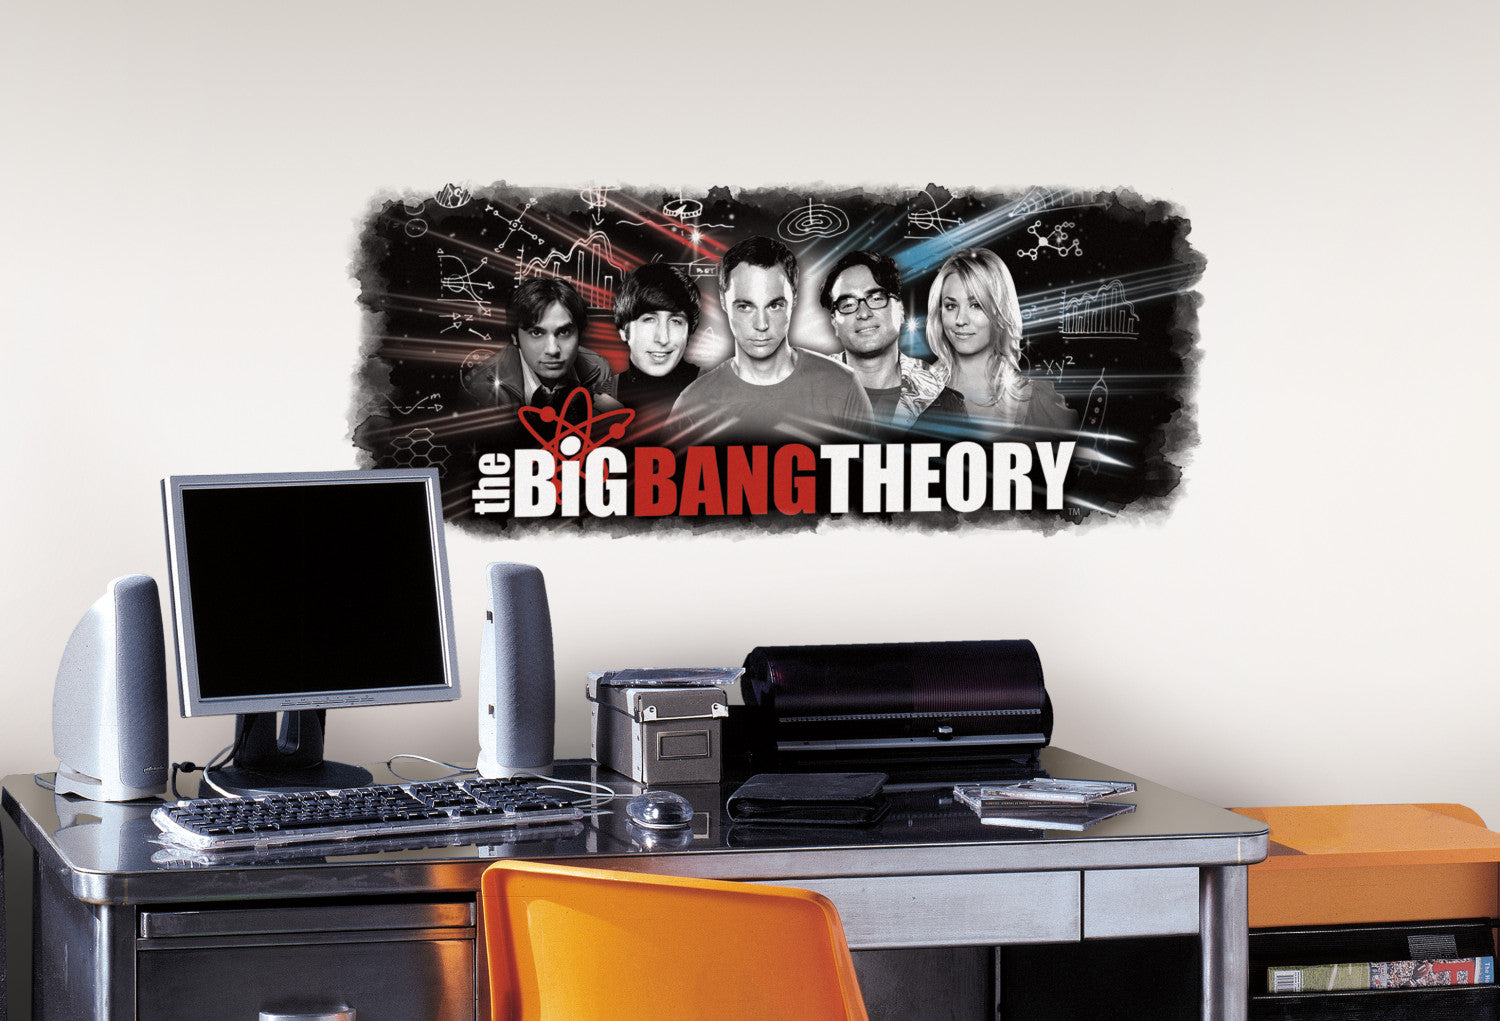 Big Bang Theory Wall Graphic Peel And Stick Giant Wall Decals